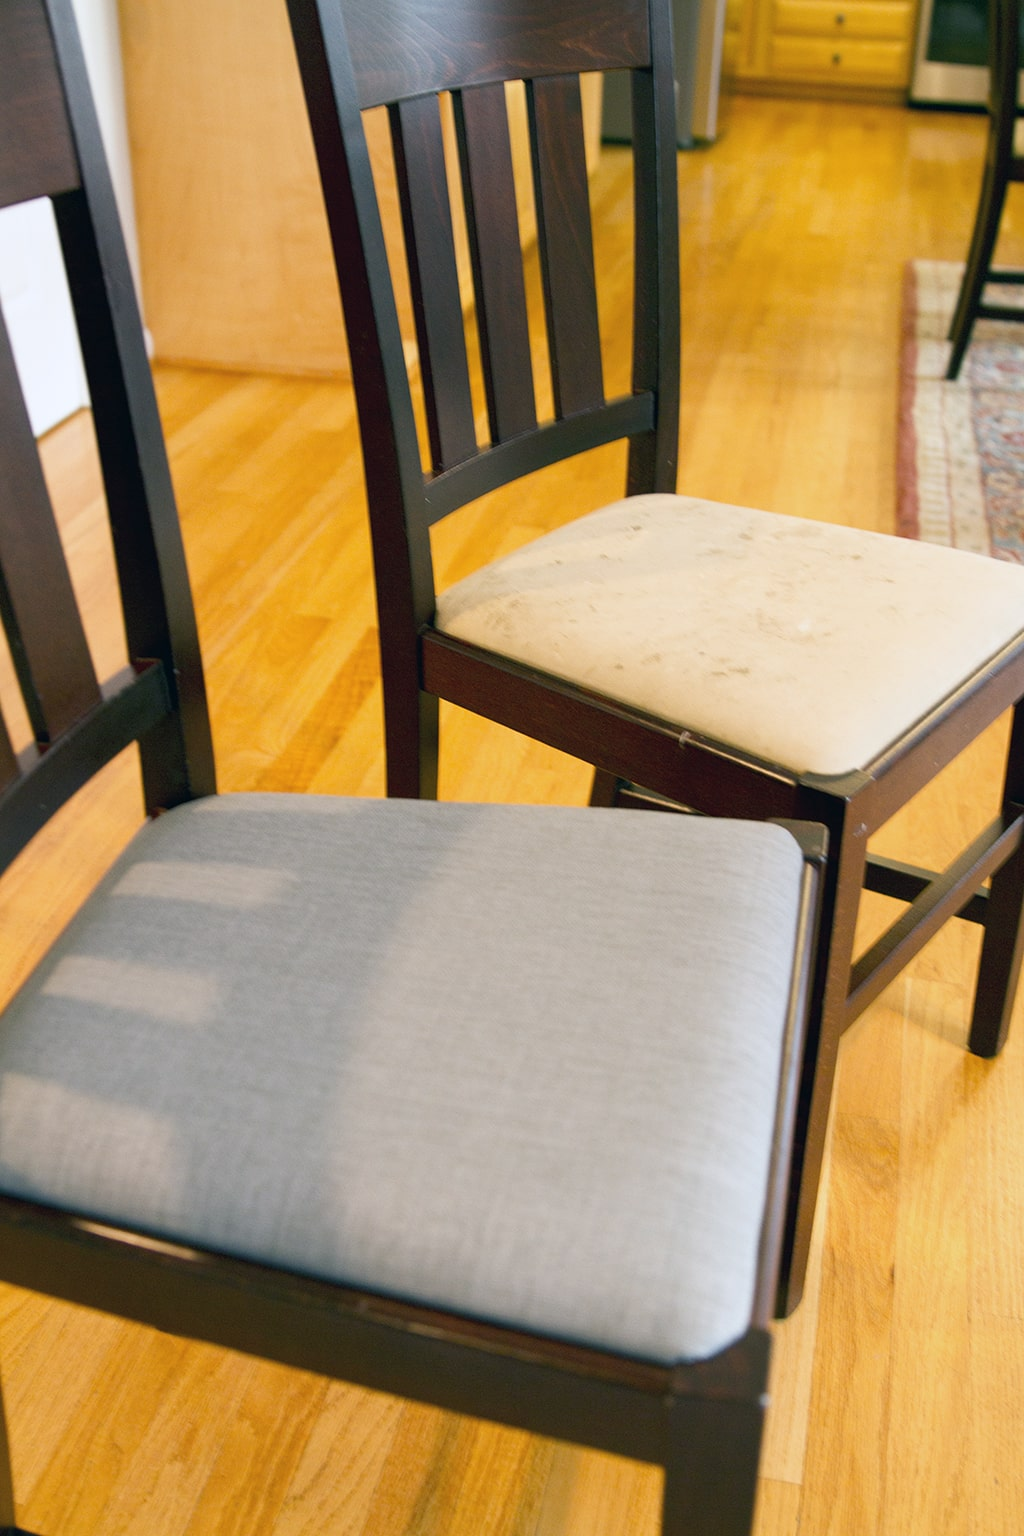 Before and After chairs side by side